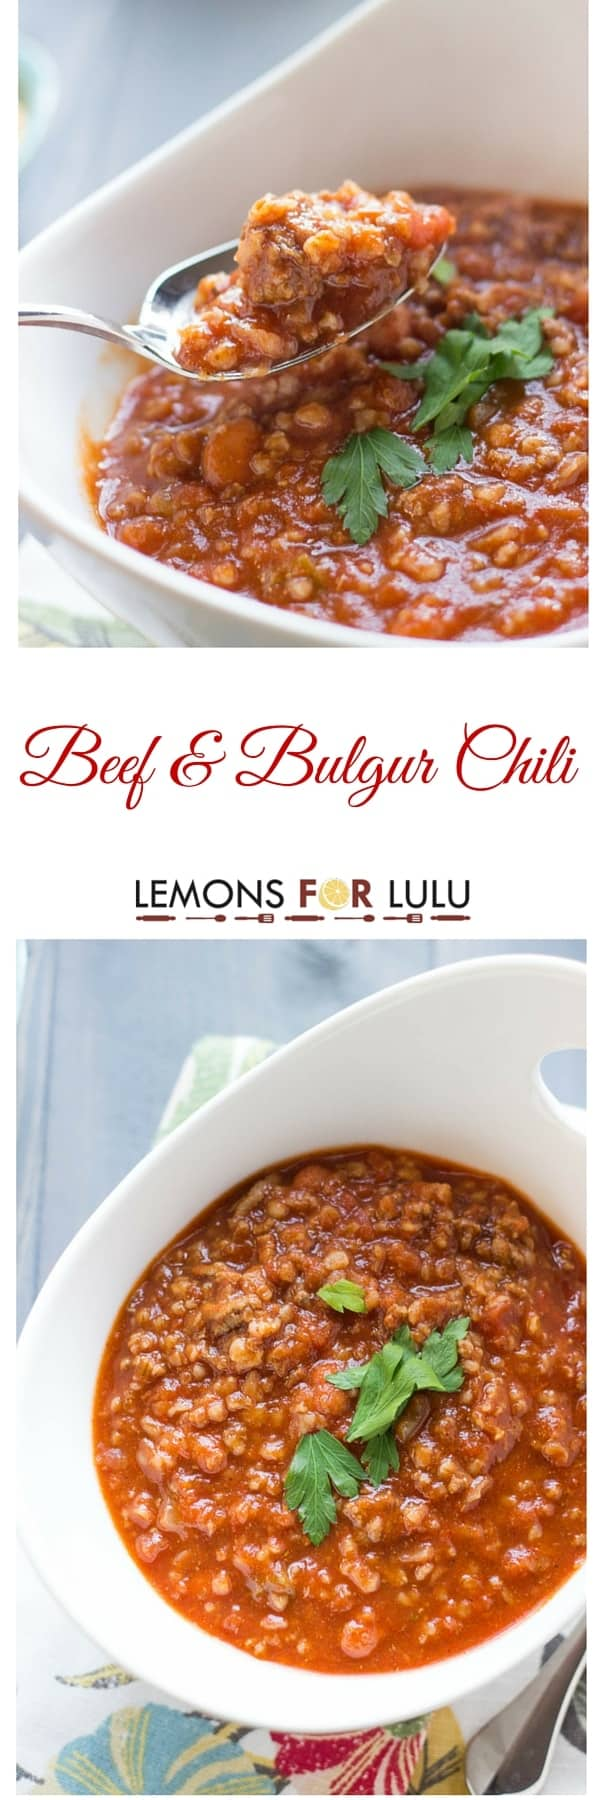 Nothing warms you up quite like a big bowl of chili! This easy homemade chili features lots of beef, hearty bulgur and a whole lot of flavor! lemonsforlulu.com